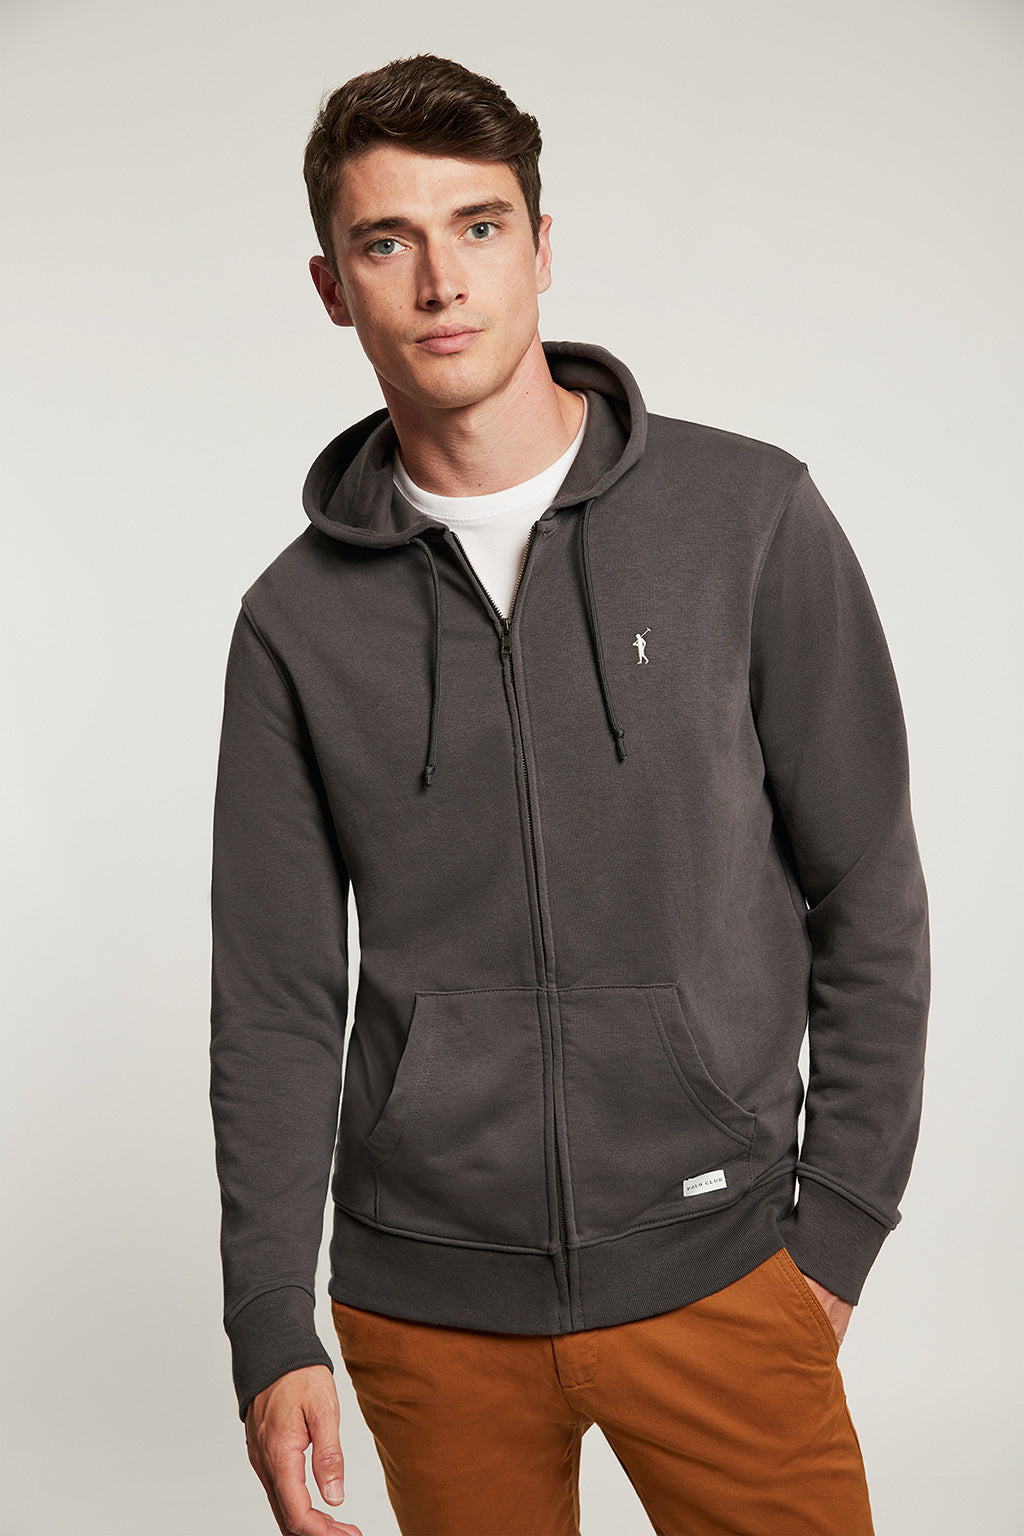 Asphalt grey organic sweatshirt with zip closure and contrast embroidery